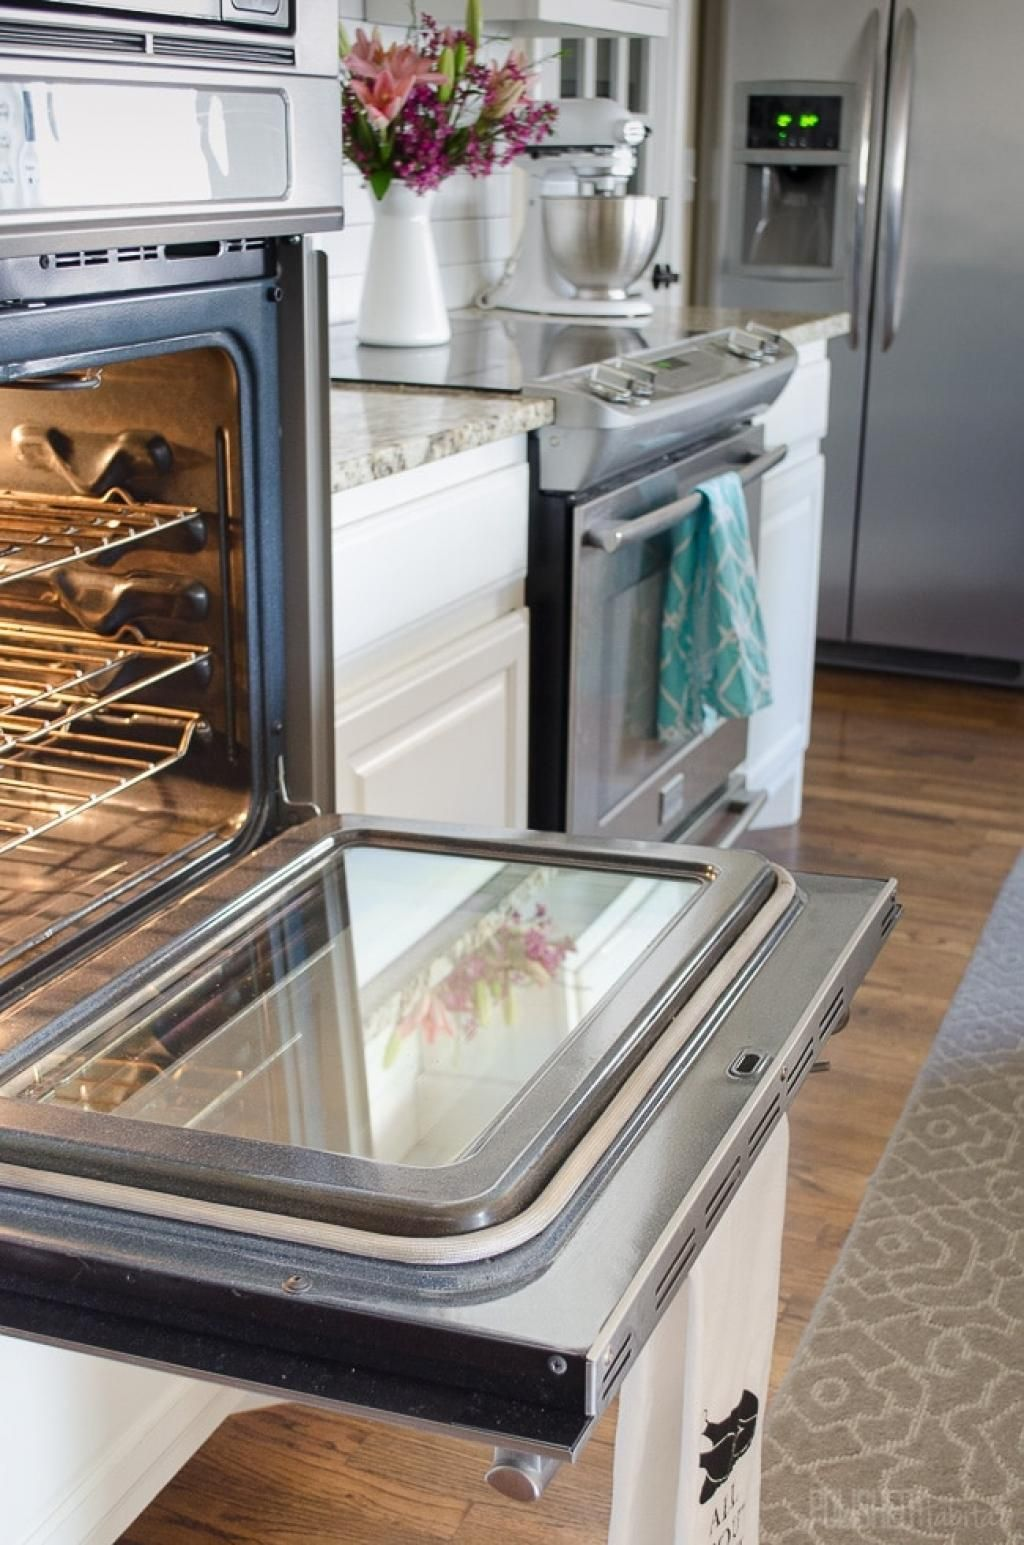 Is Your Oven Door Glass So Dirty That You Cant See Through It